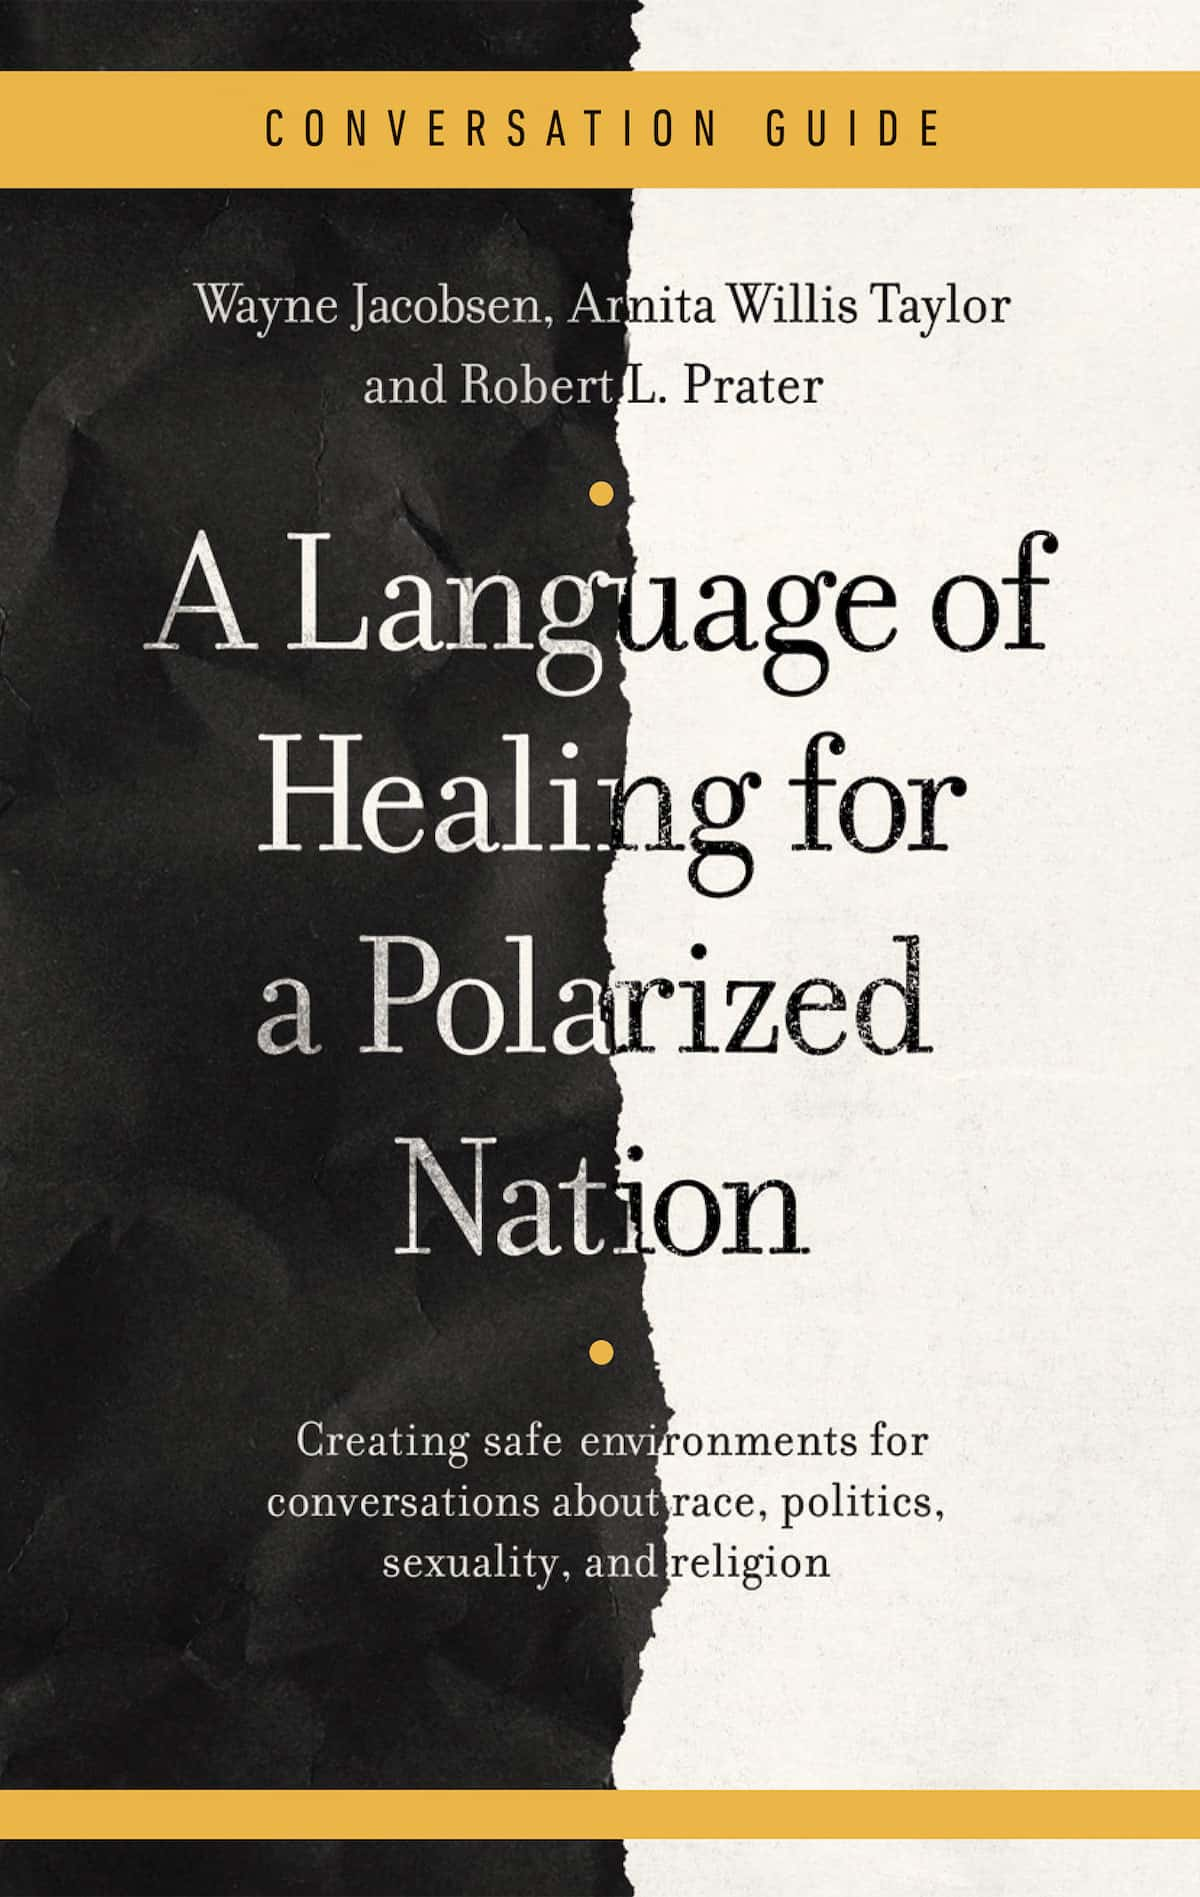 A Language of Healing for a Polarized Nation - Conversation Guide